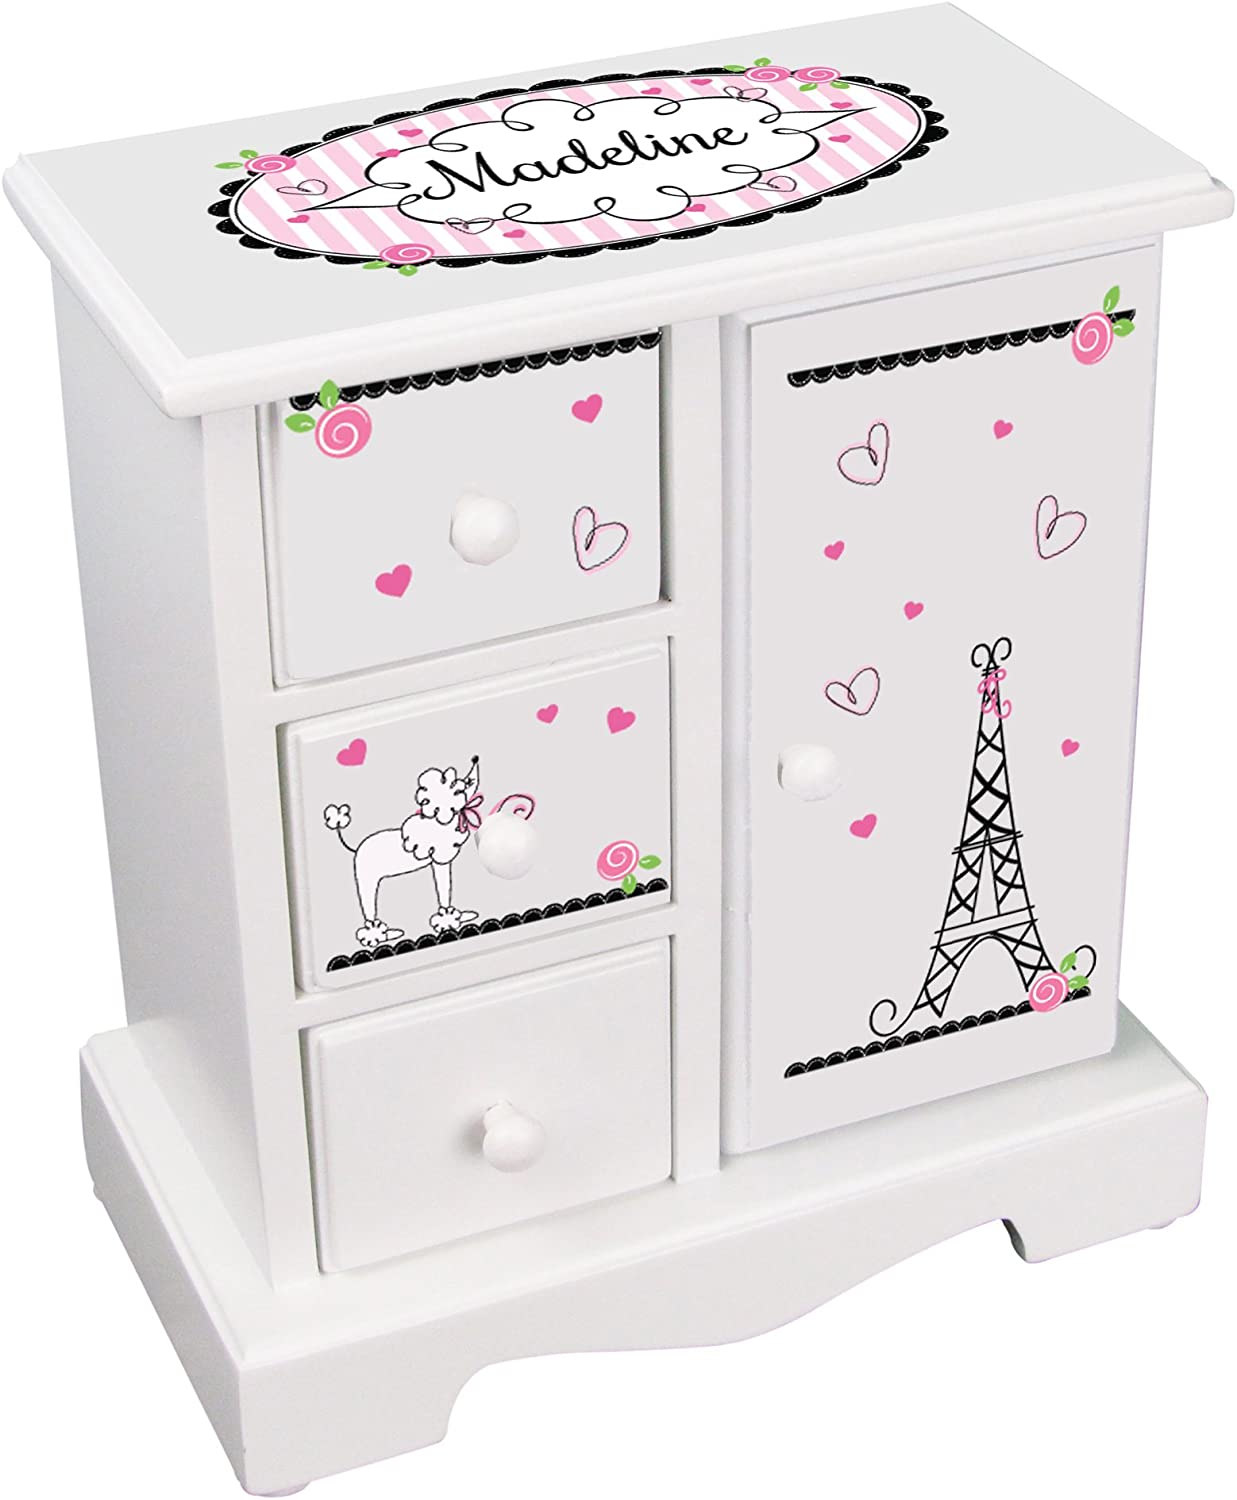 Amazon Com Mybambino Personalized Girls Jewelry Armoire Chest Paris France Box W Drawers Necklace Holder Home Kitchen